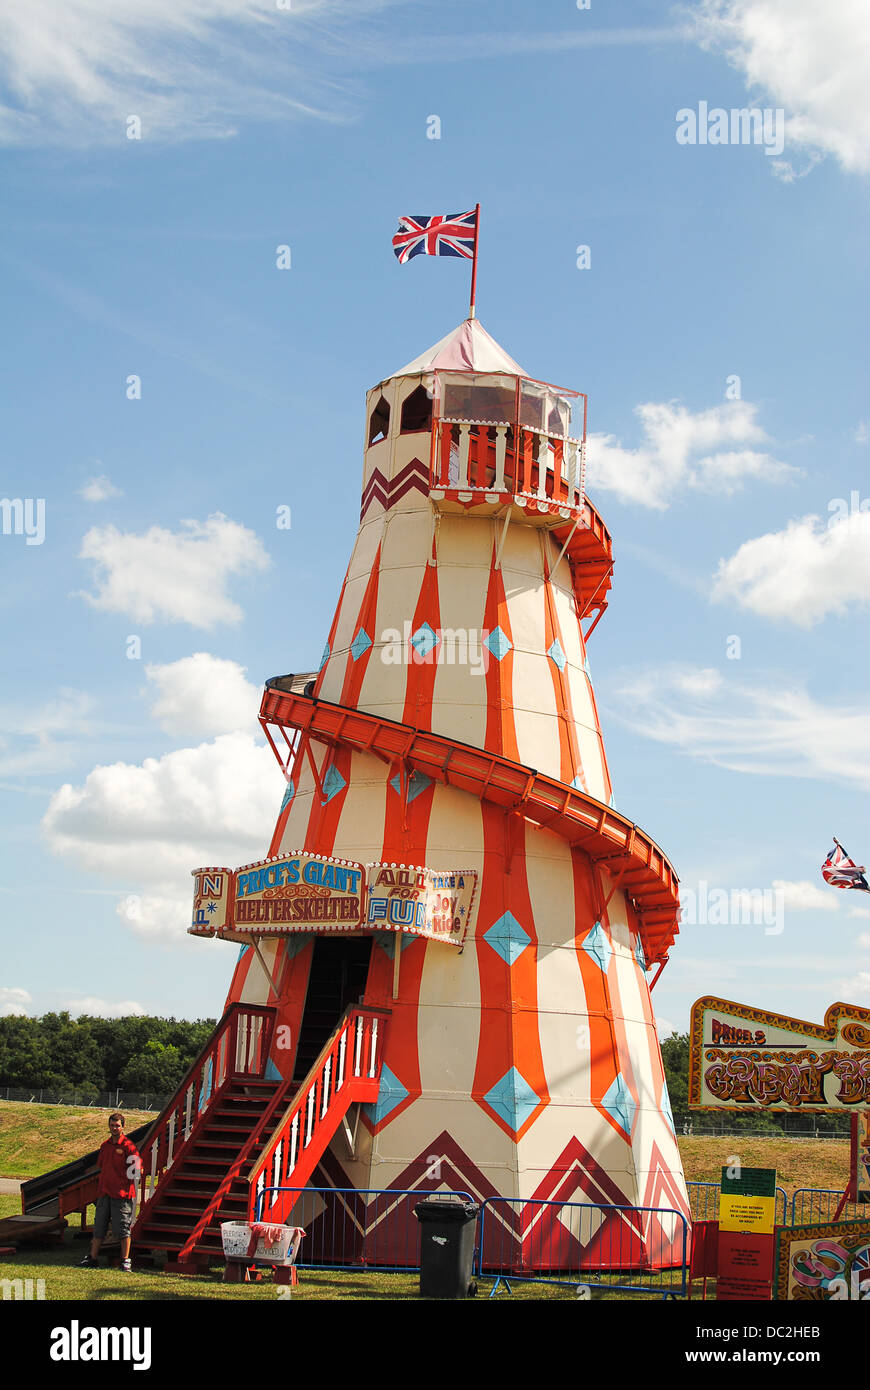 Helter skelter at Silverstone classic - Stock Image